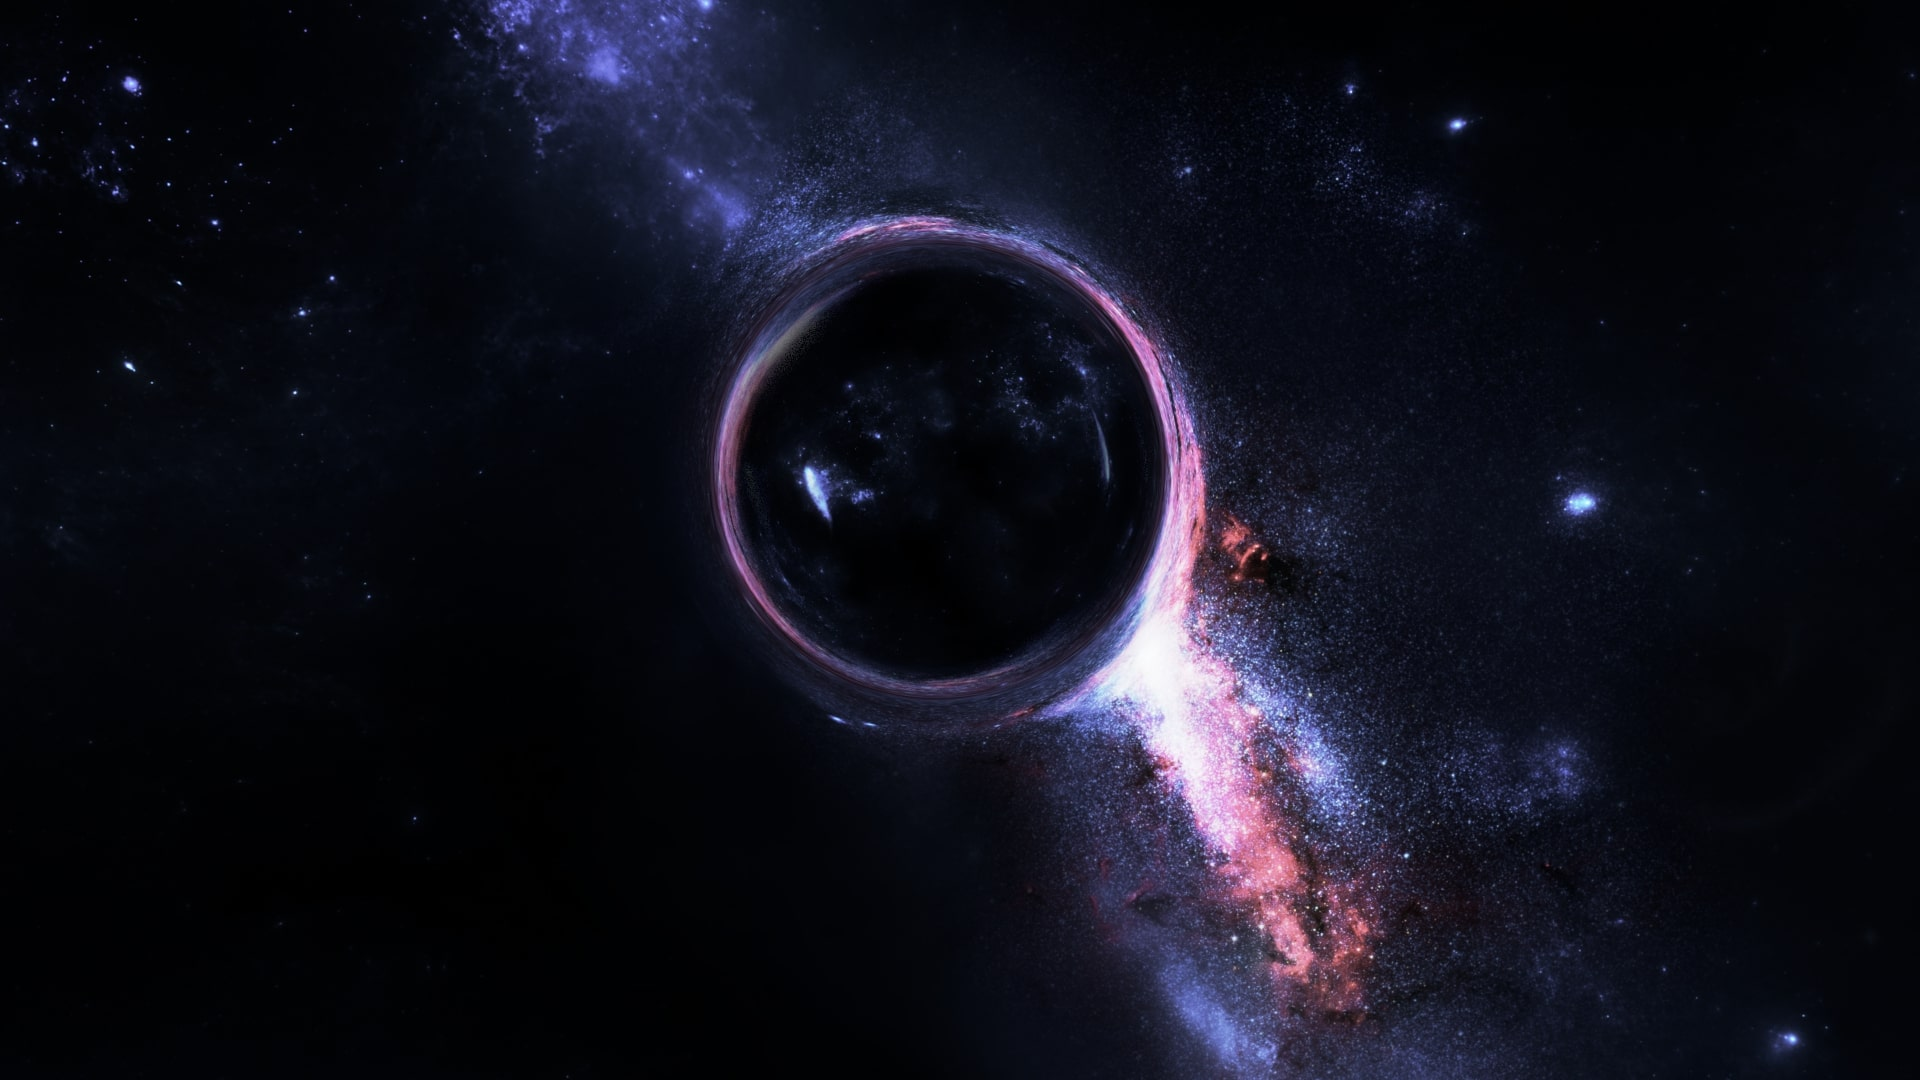 Wallpaper of Black Hole Space Galaxy background and HD image